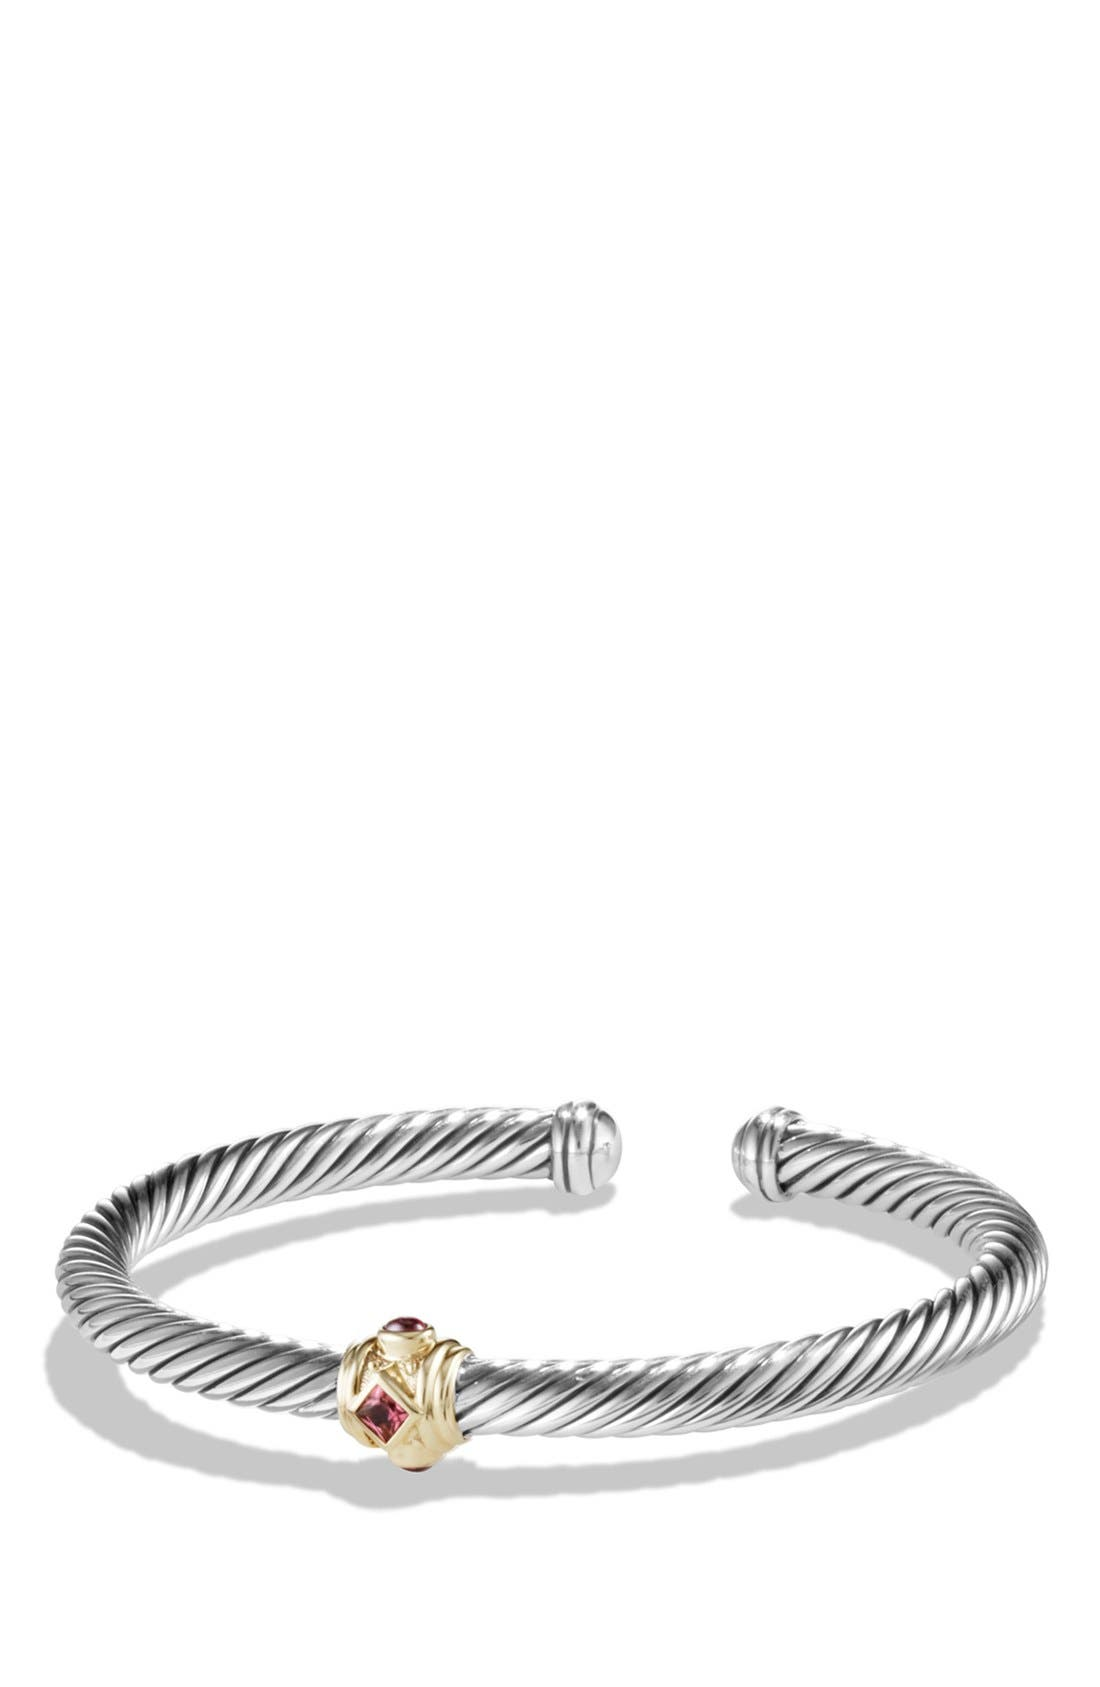 Main Image - David Yurman 'Renaissance' Bracelet with Semiprecious Stone and 14K Gold